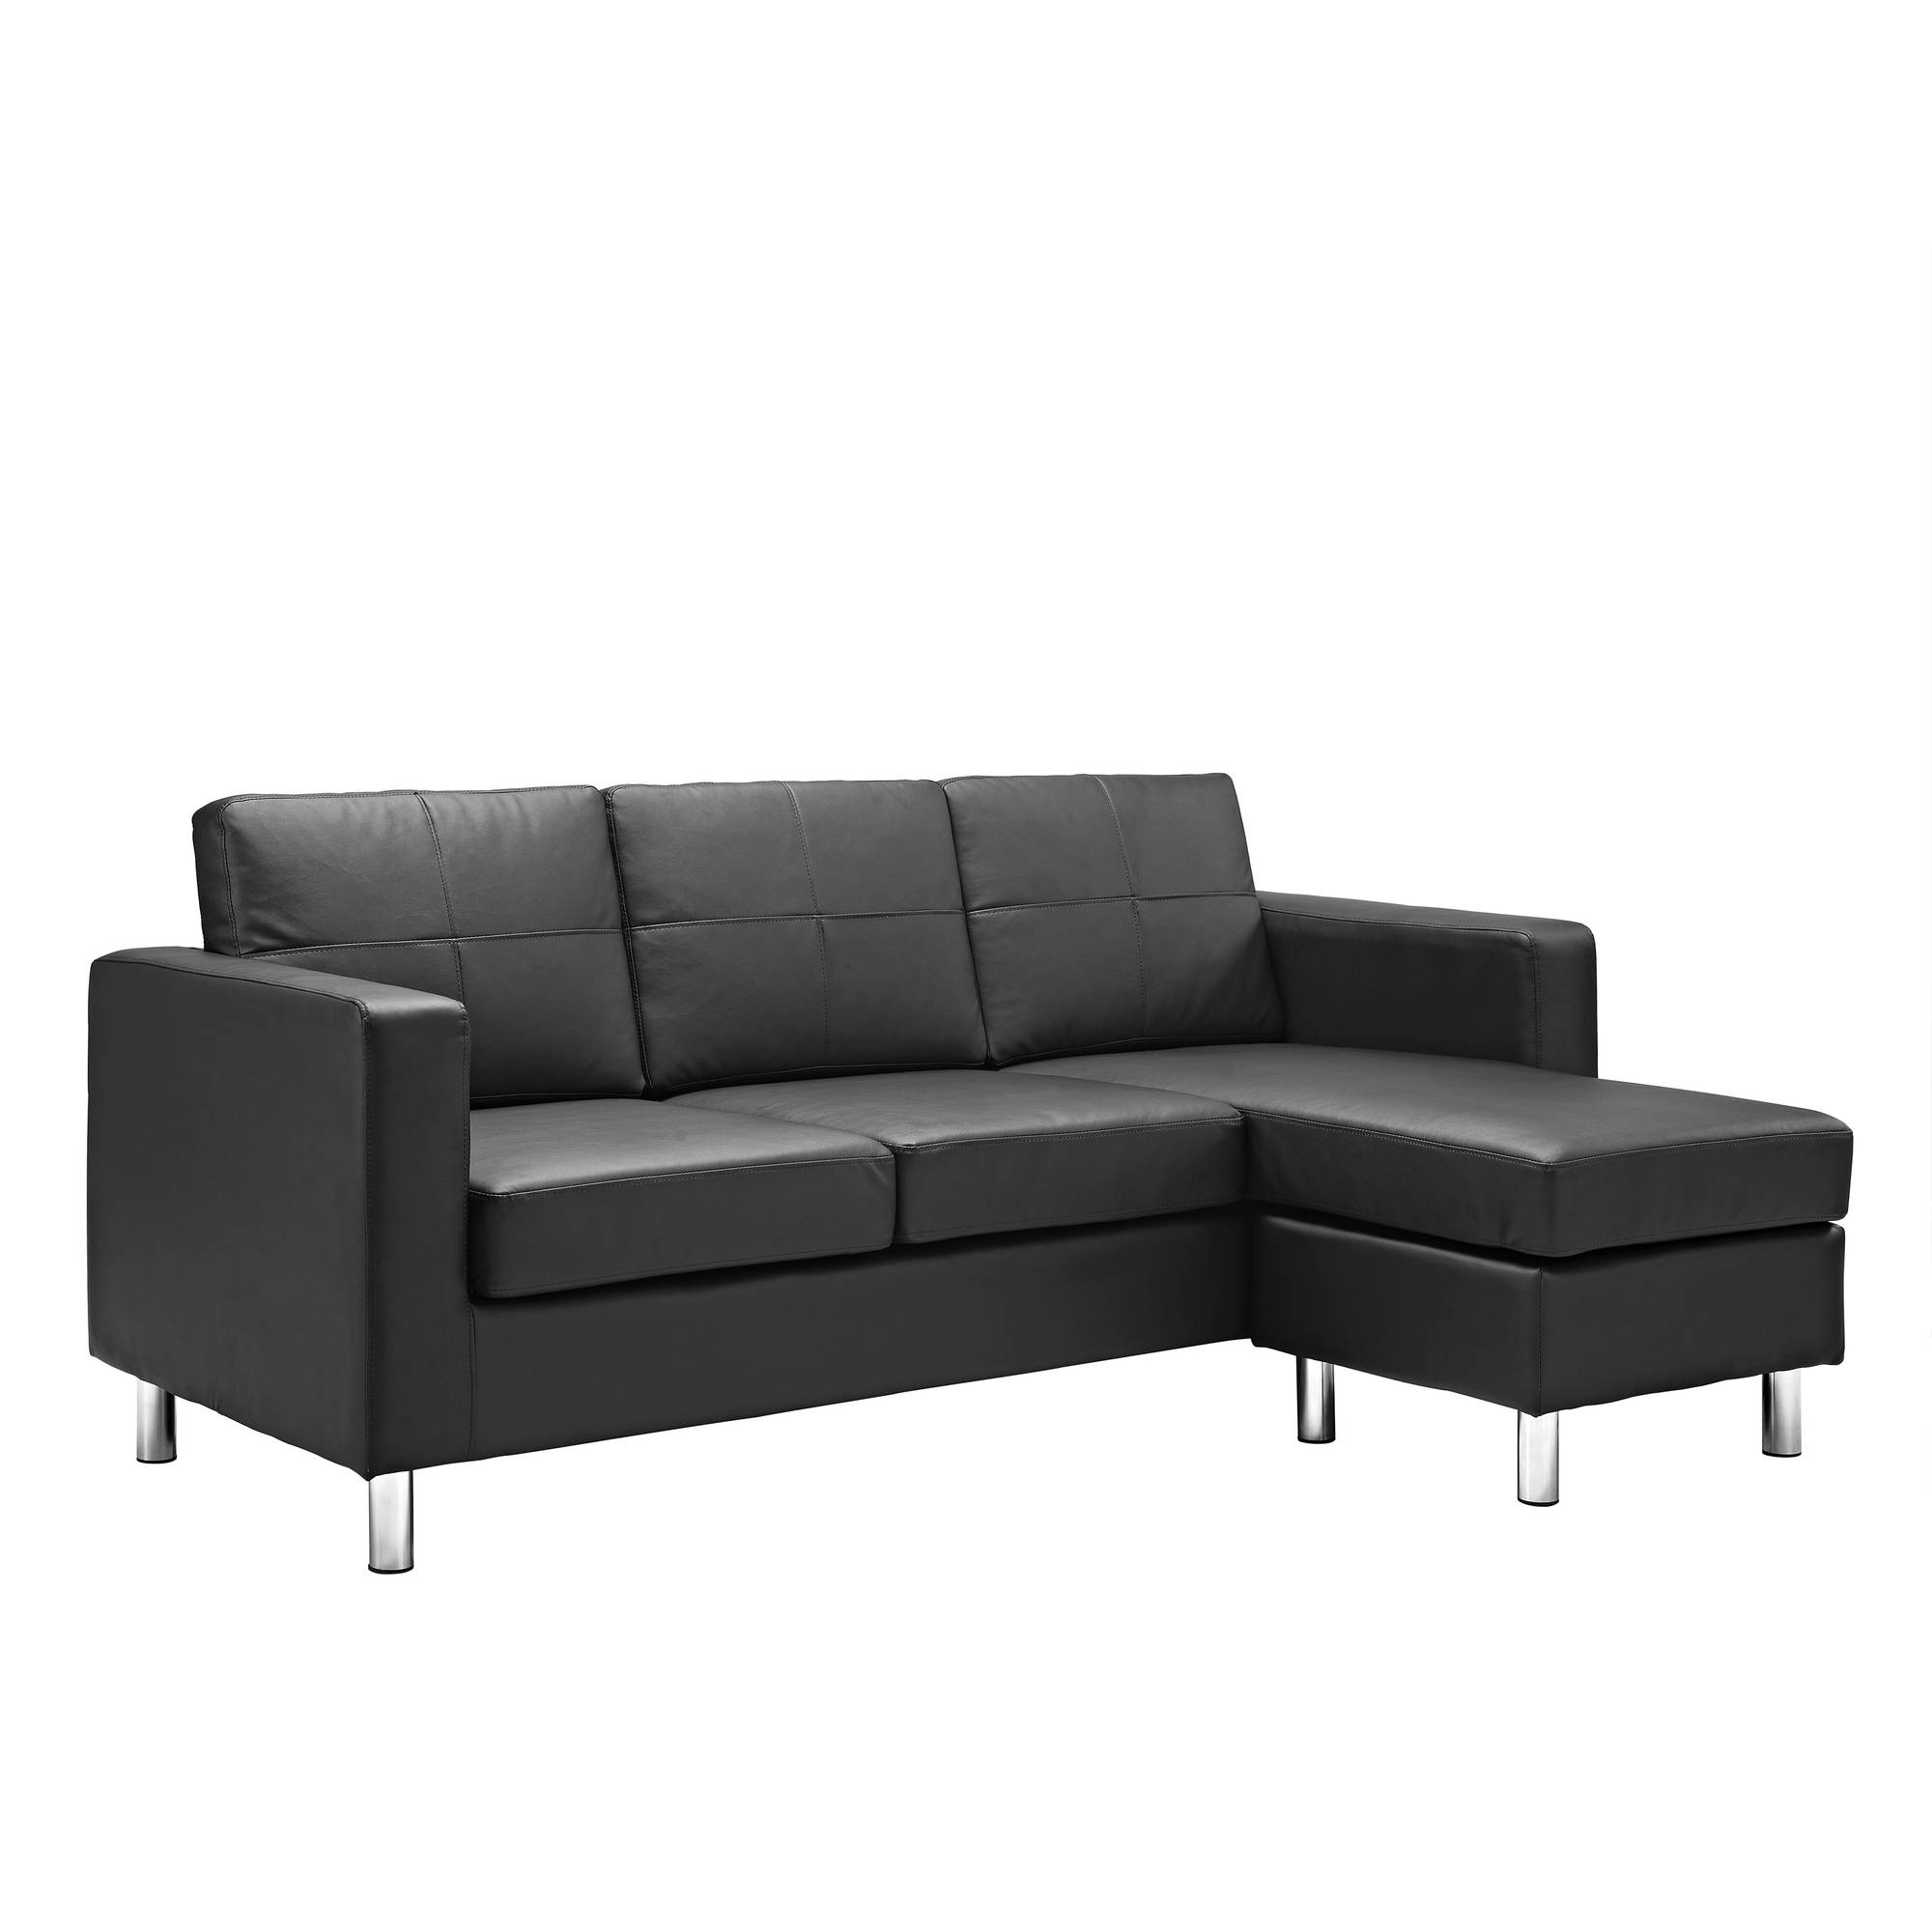 Dorel Living Small Spaces Configurable Sectional Sofa, Multiple Colors   Walmart